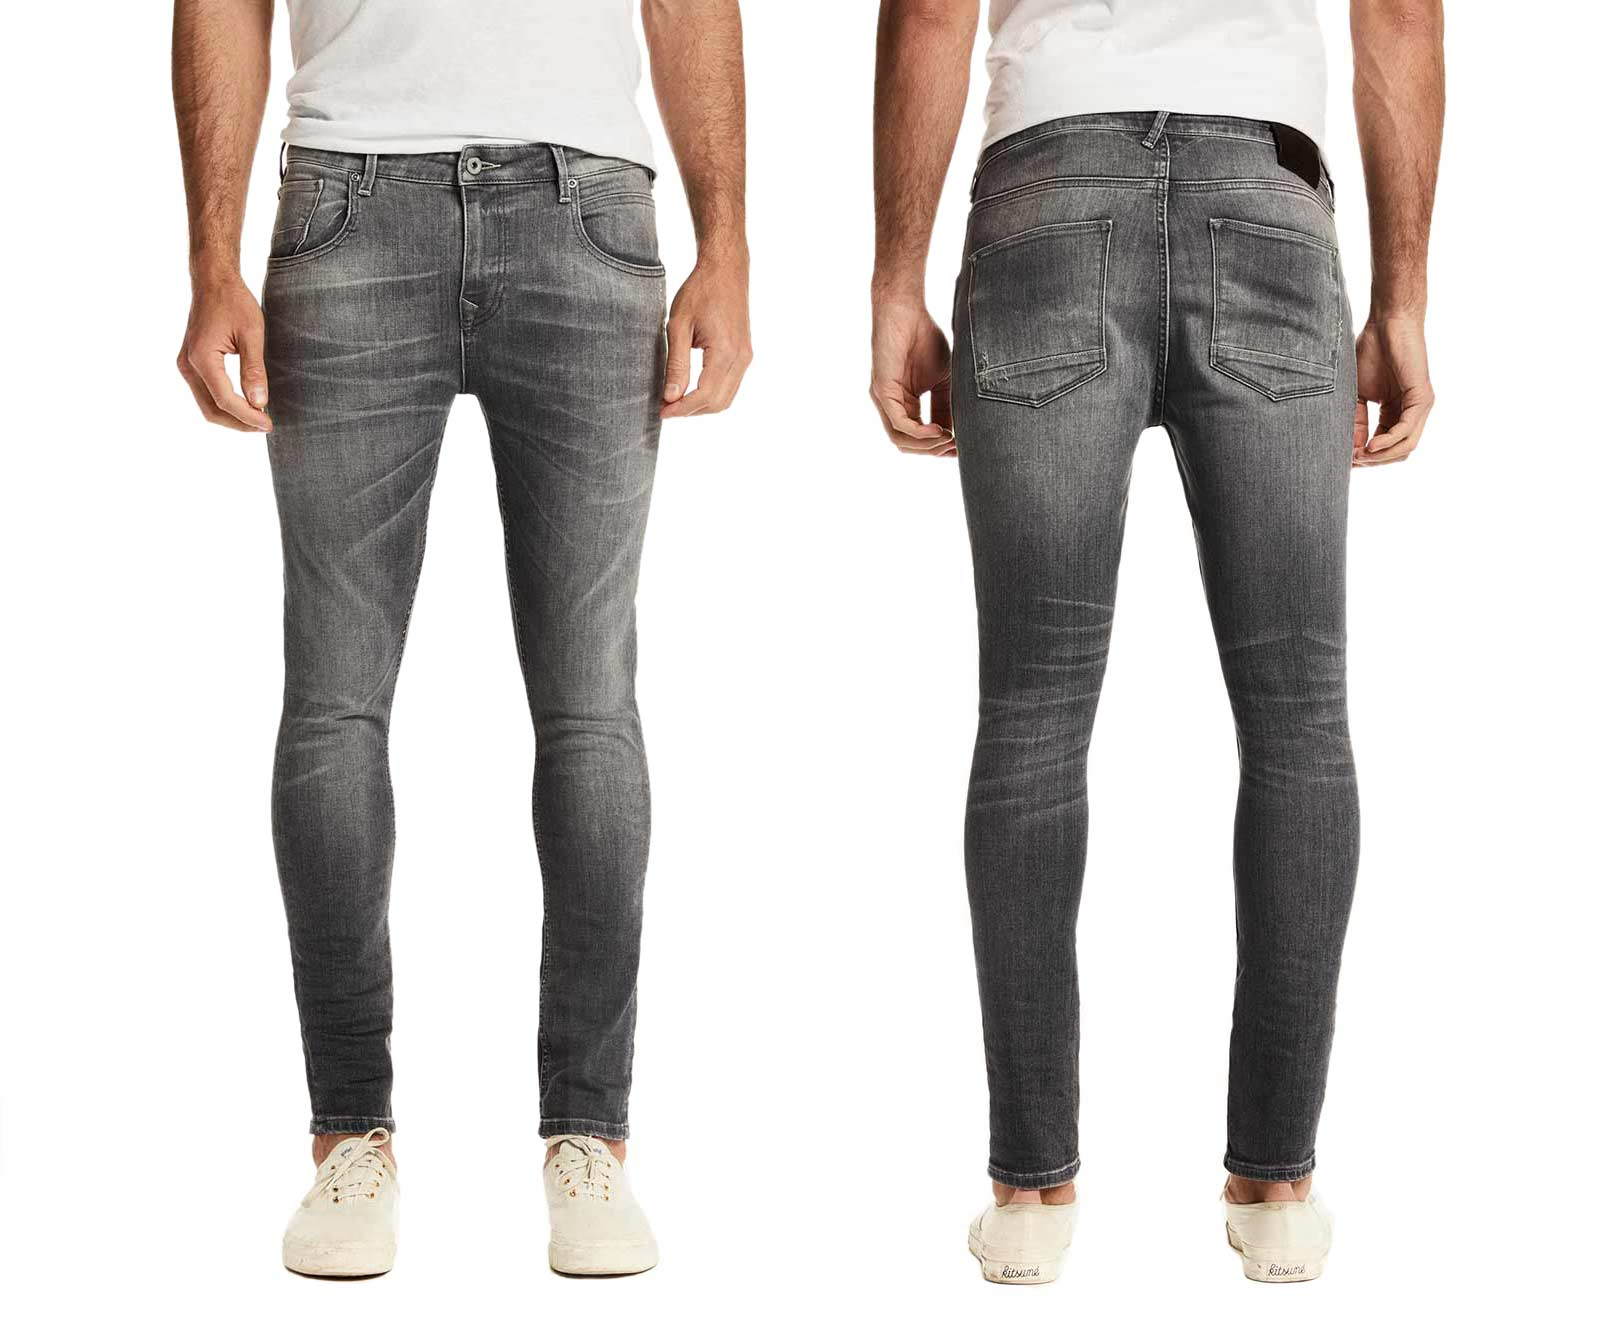 https://www.scotch-soda.com/nl/nl/heren/jeans/super-skinny-fit/super-skinny--dart